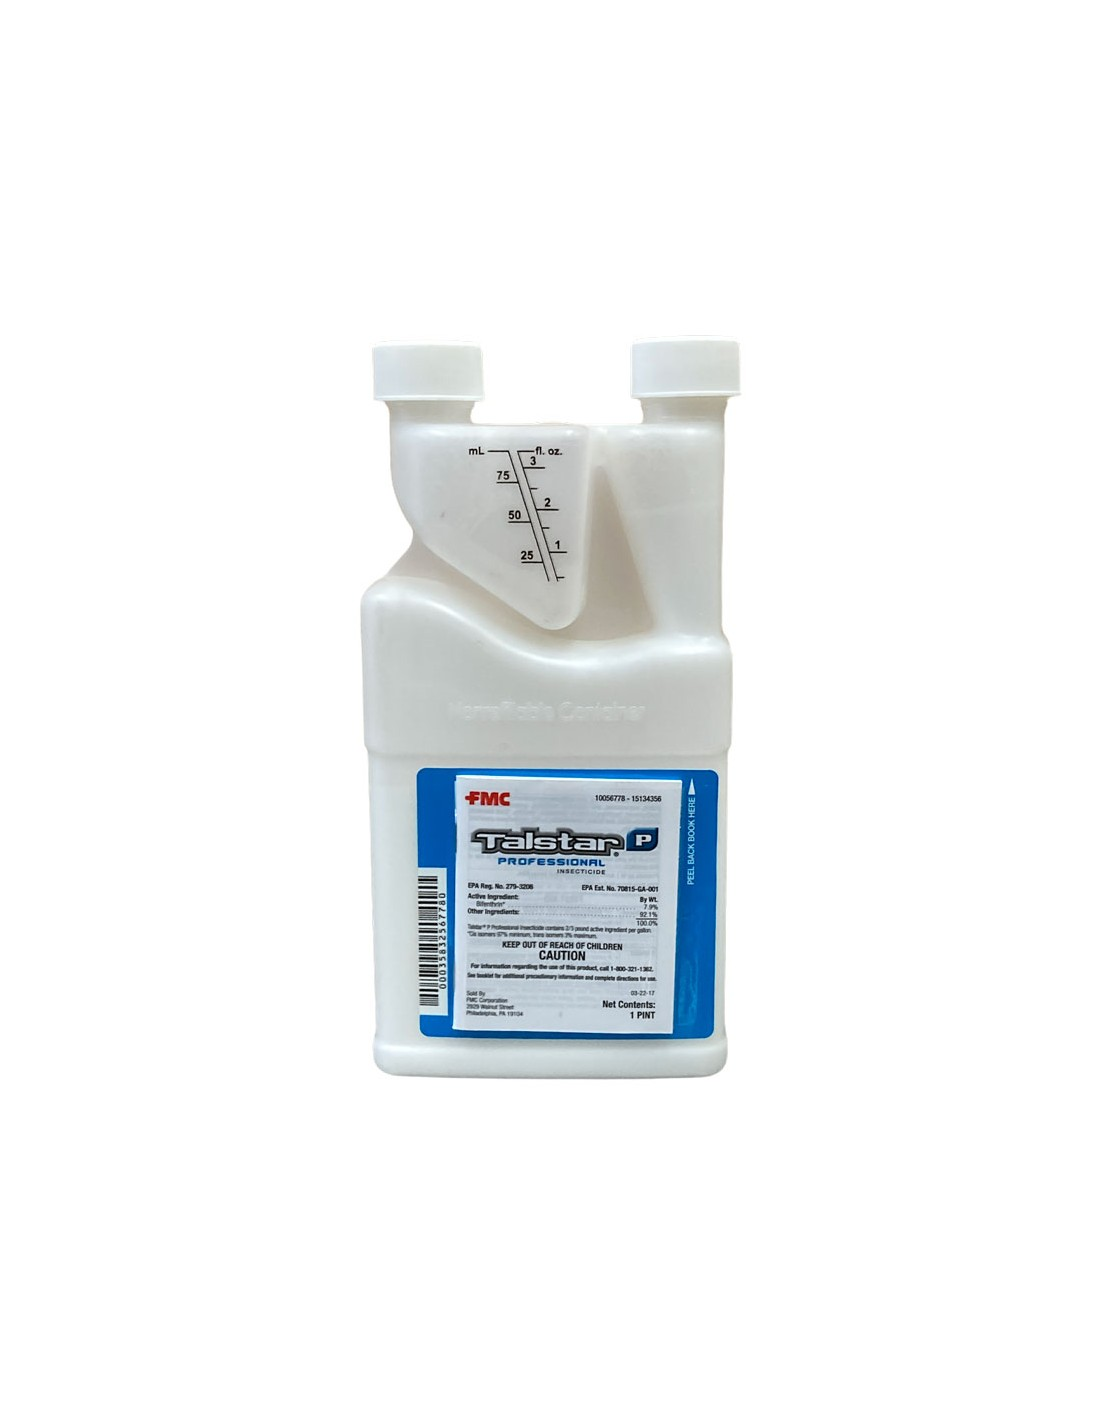 How do I to measure 1 fl oz of product to go into per gallon. What measuring device am I using to do so